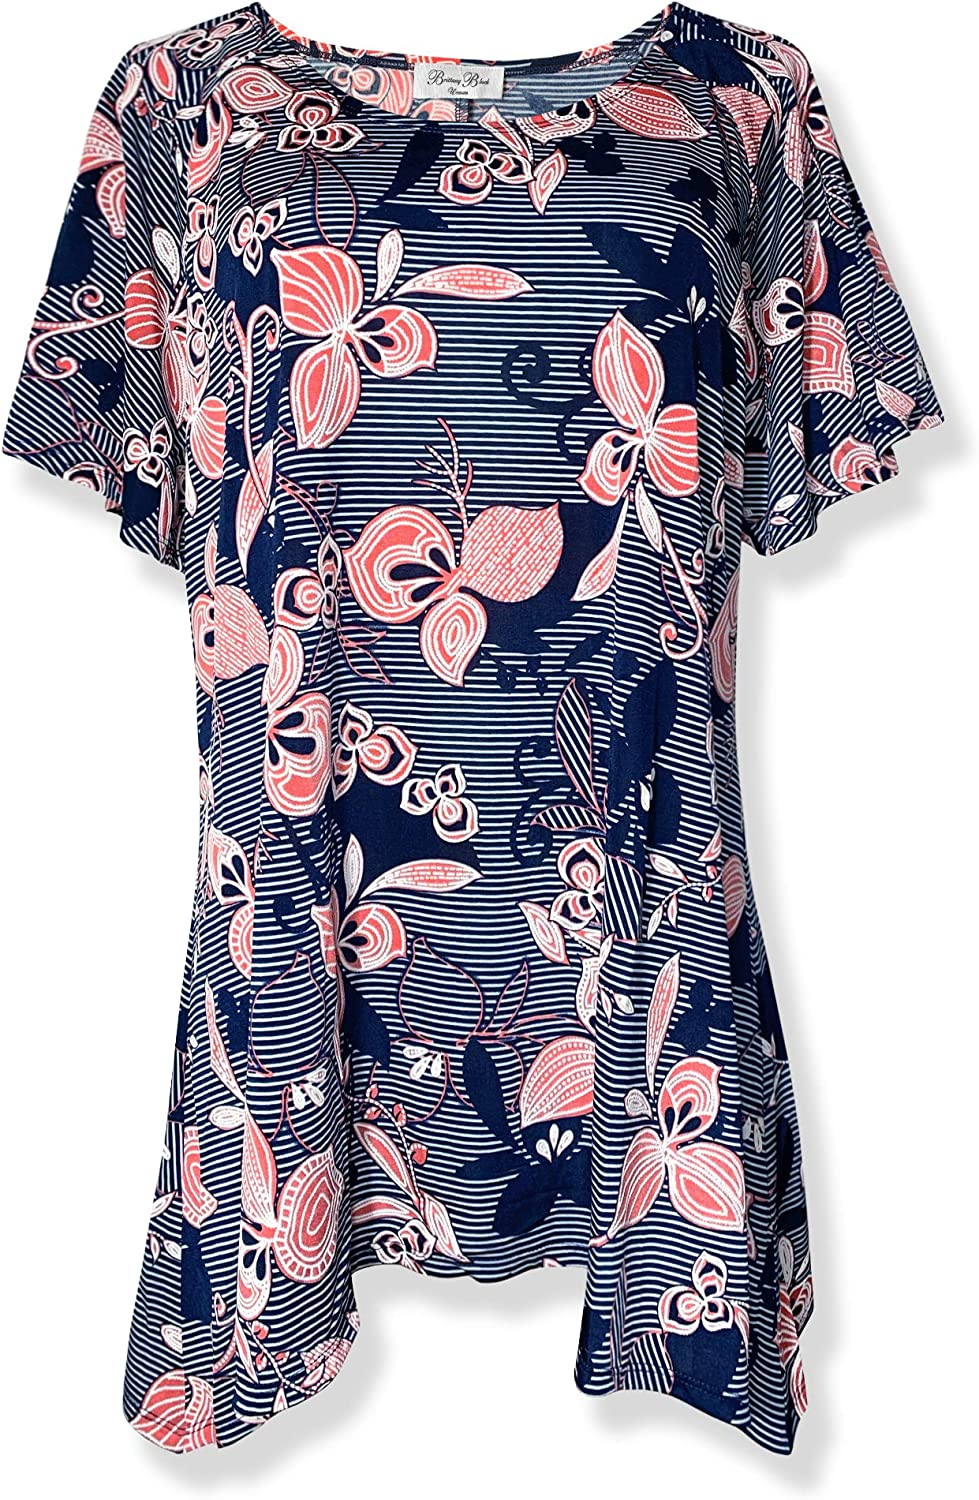 Brittany Black Women's Flutter Short Sleeve Floral Tunic Knit Top